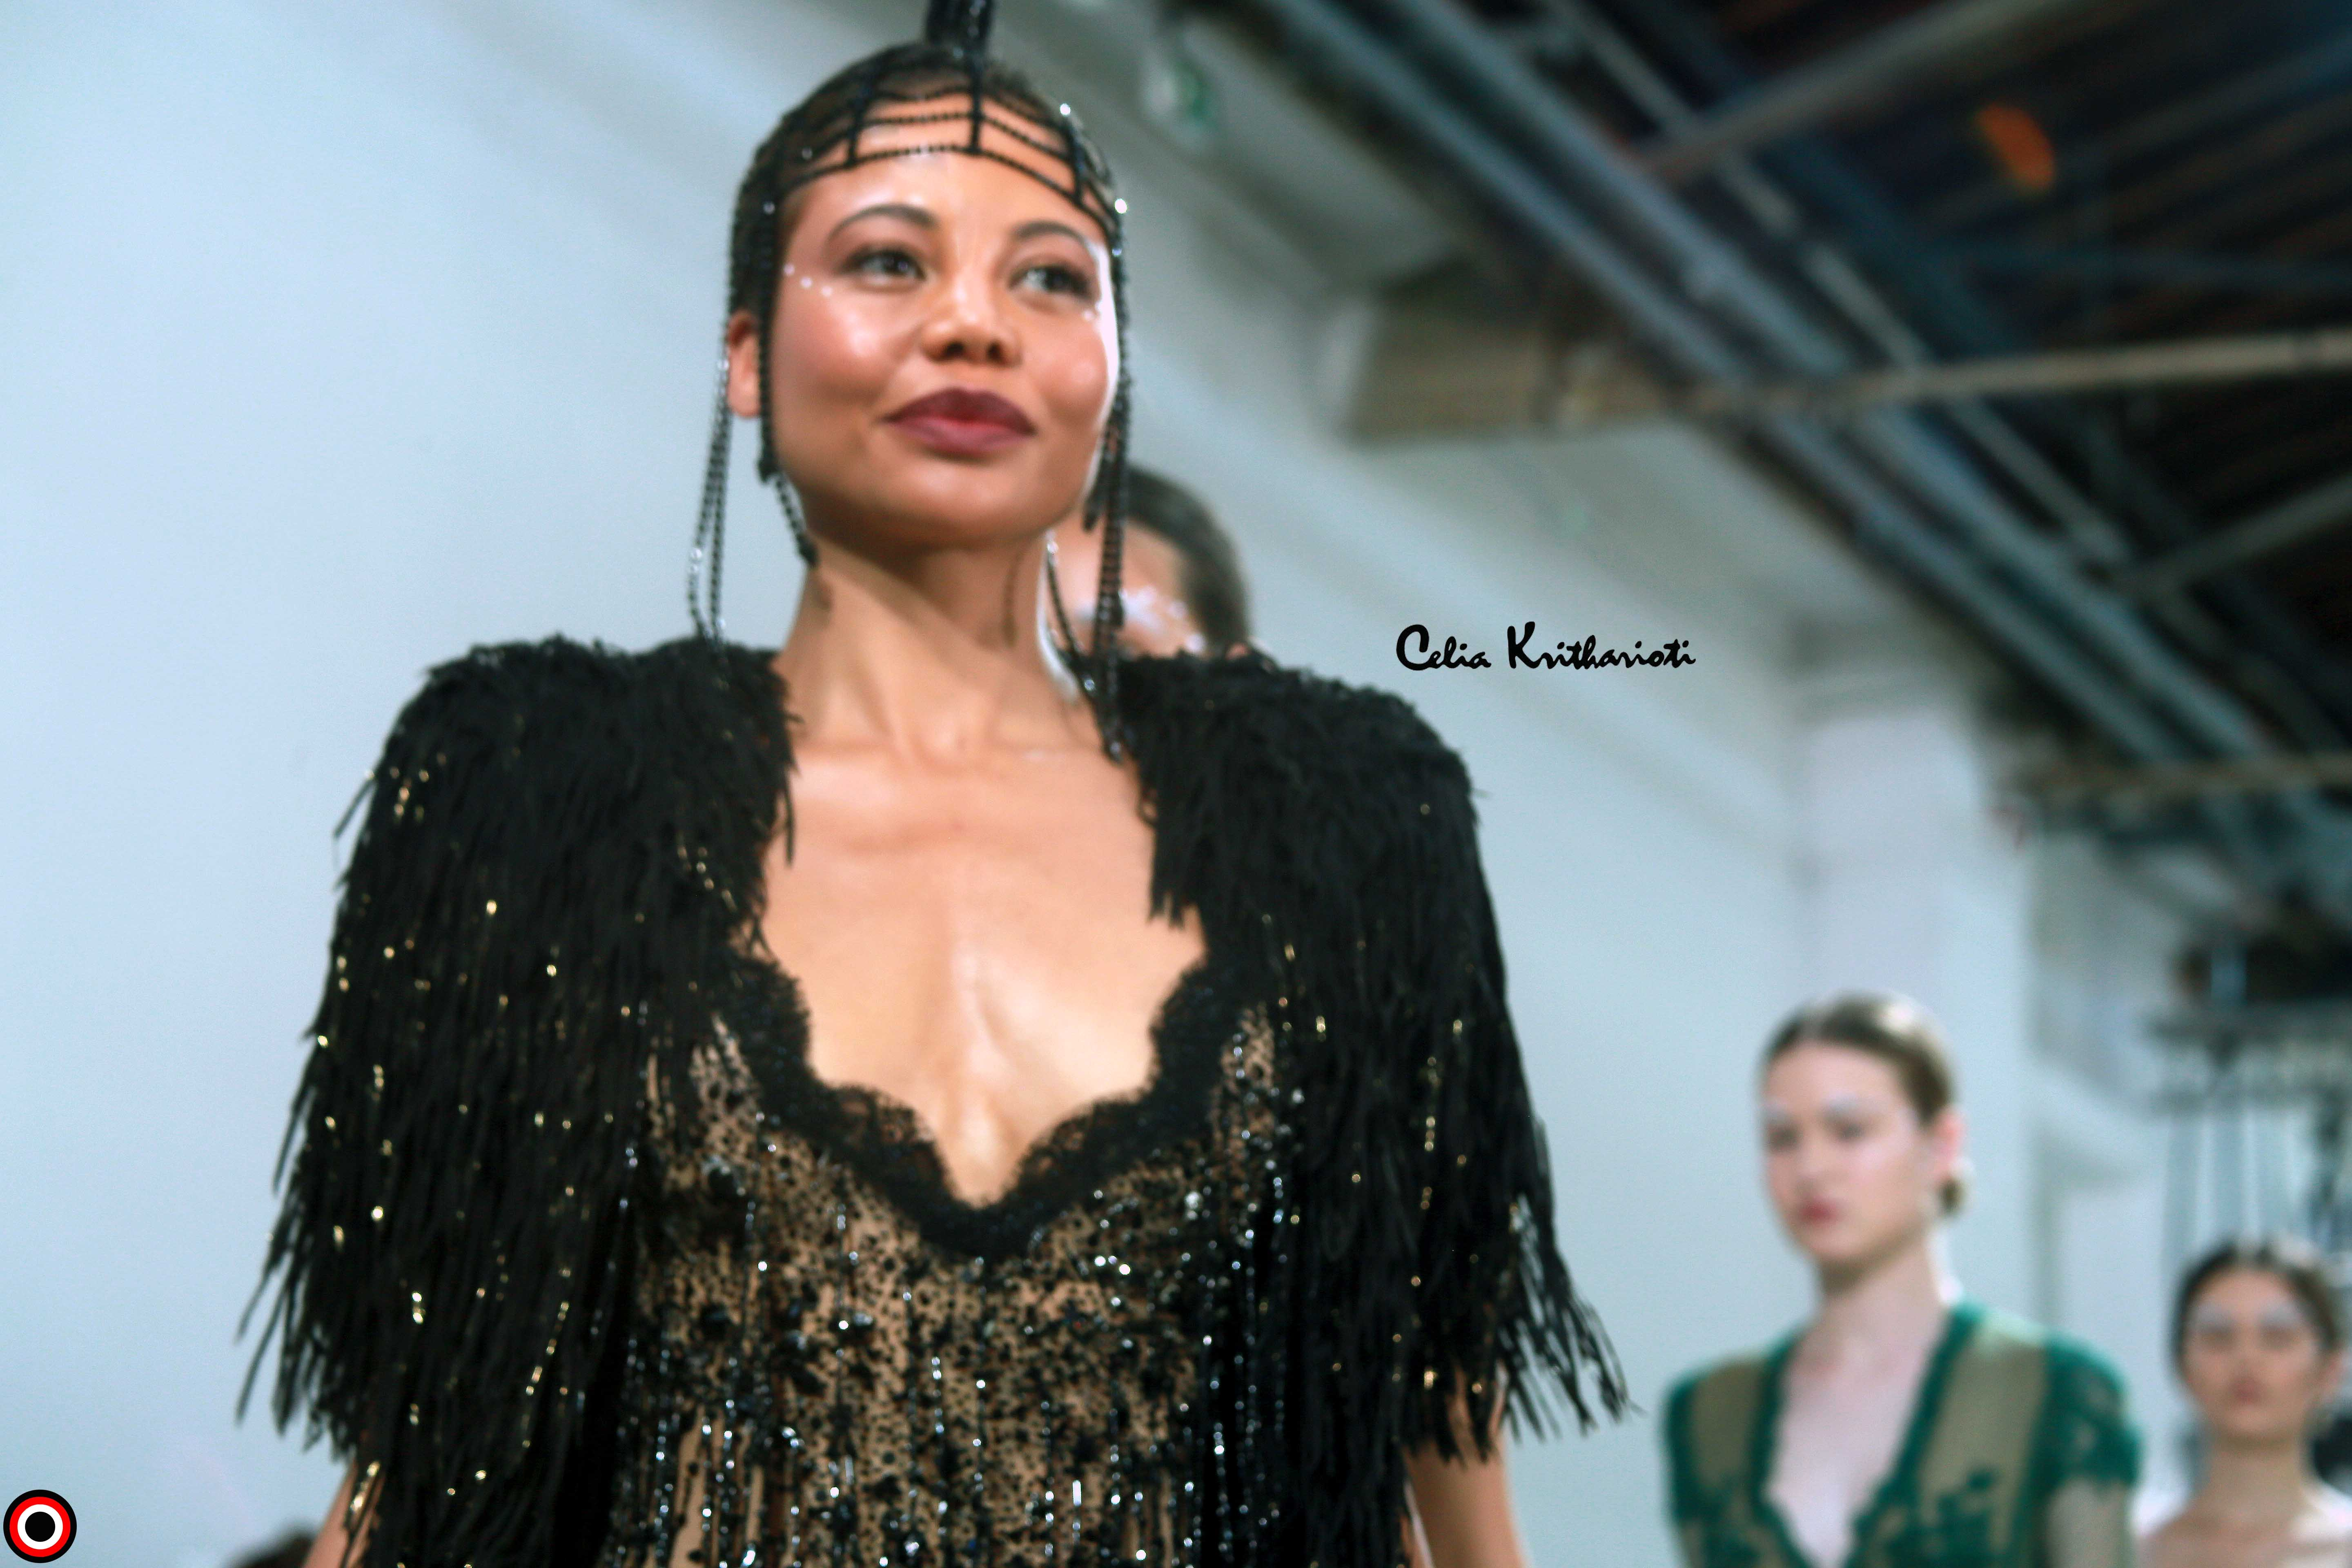 AFRICAN FASHION STYLE MAGAZINE – Celia KRITHARIOTI PFW - Collection Couture Fall Winter 2019-20 - Photographer DAN NGU - Official Media Partner DN AFRICA - STUDIO 24 NIGERIA - STUDIO 24 INTERNATIONAL - Ifeanyi Christopher Oputa MD AND CEO OF COLVI LIMITED AND STUDIO 24 - CHEVEUX CHERIE